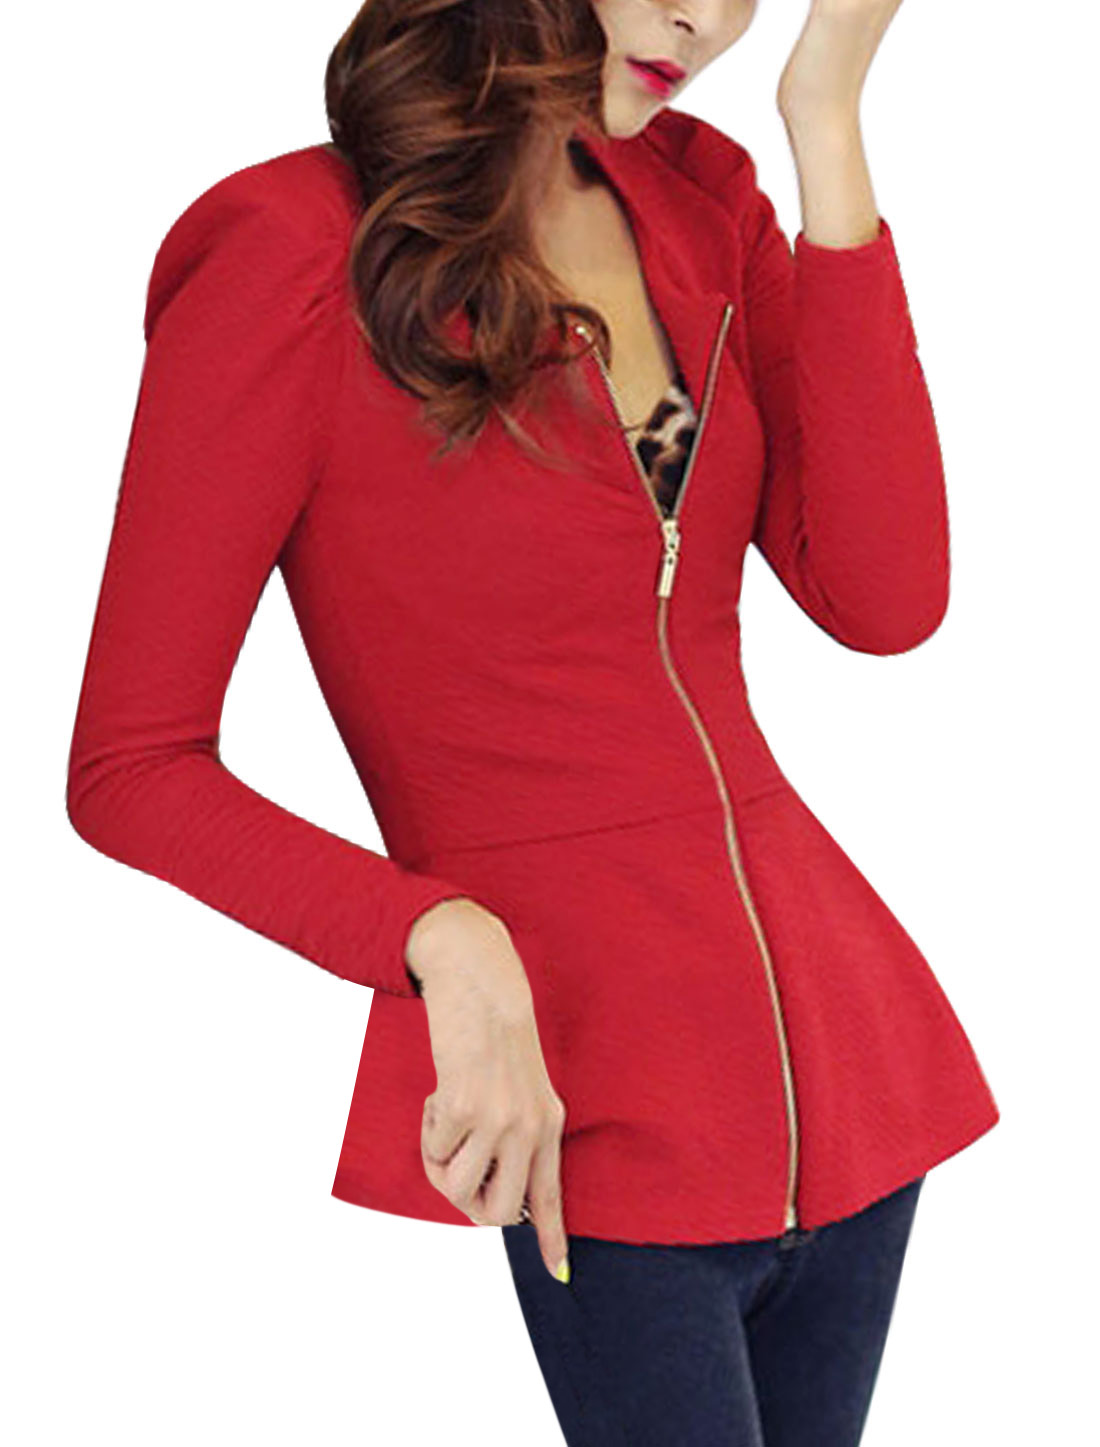 Women Puff Sleeves Textured Design Round Neck Full Zip Peplum Jacket Warm Red M